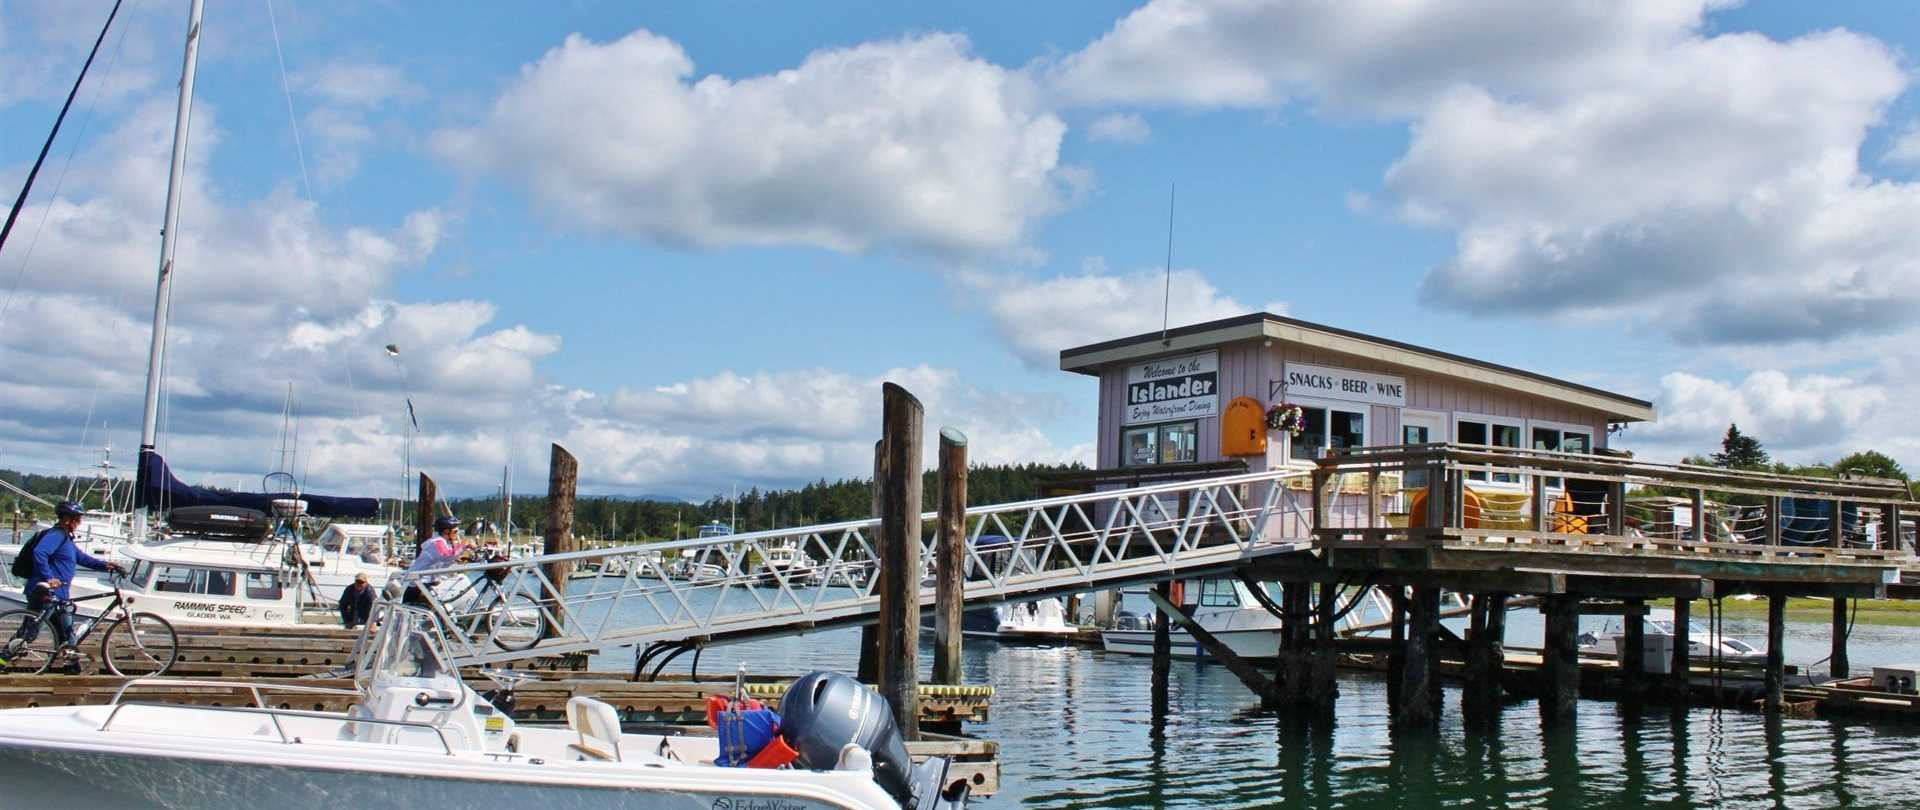 lopez islander marina moorage resort lopez island restaurant spa camping accommodations